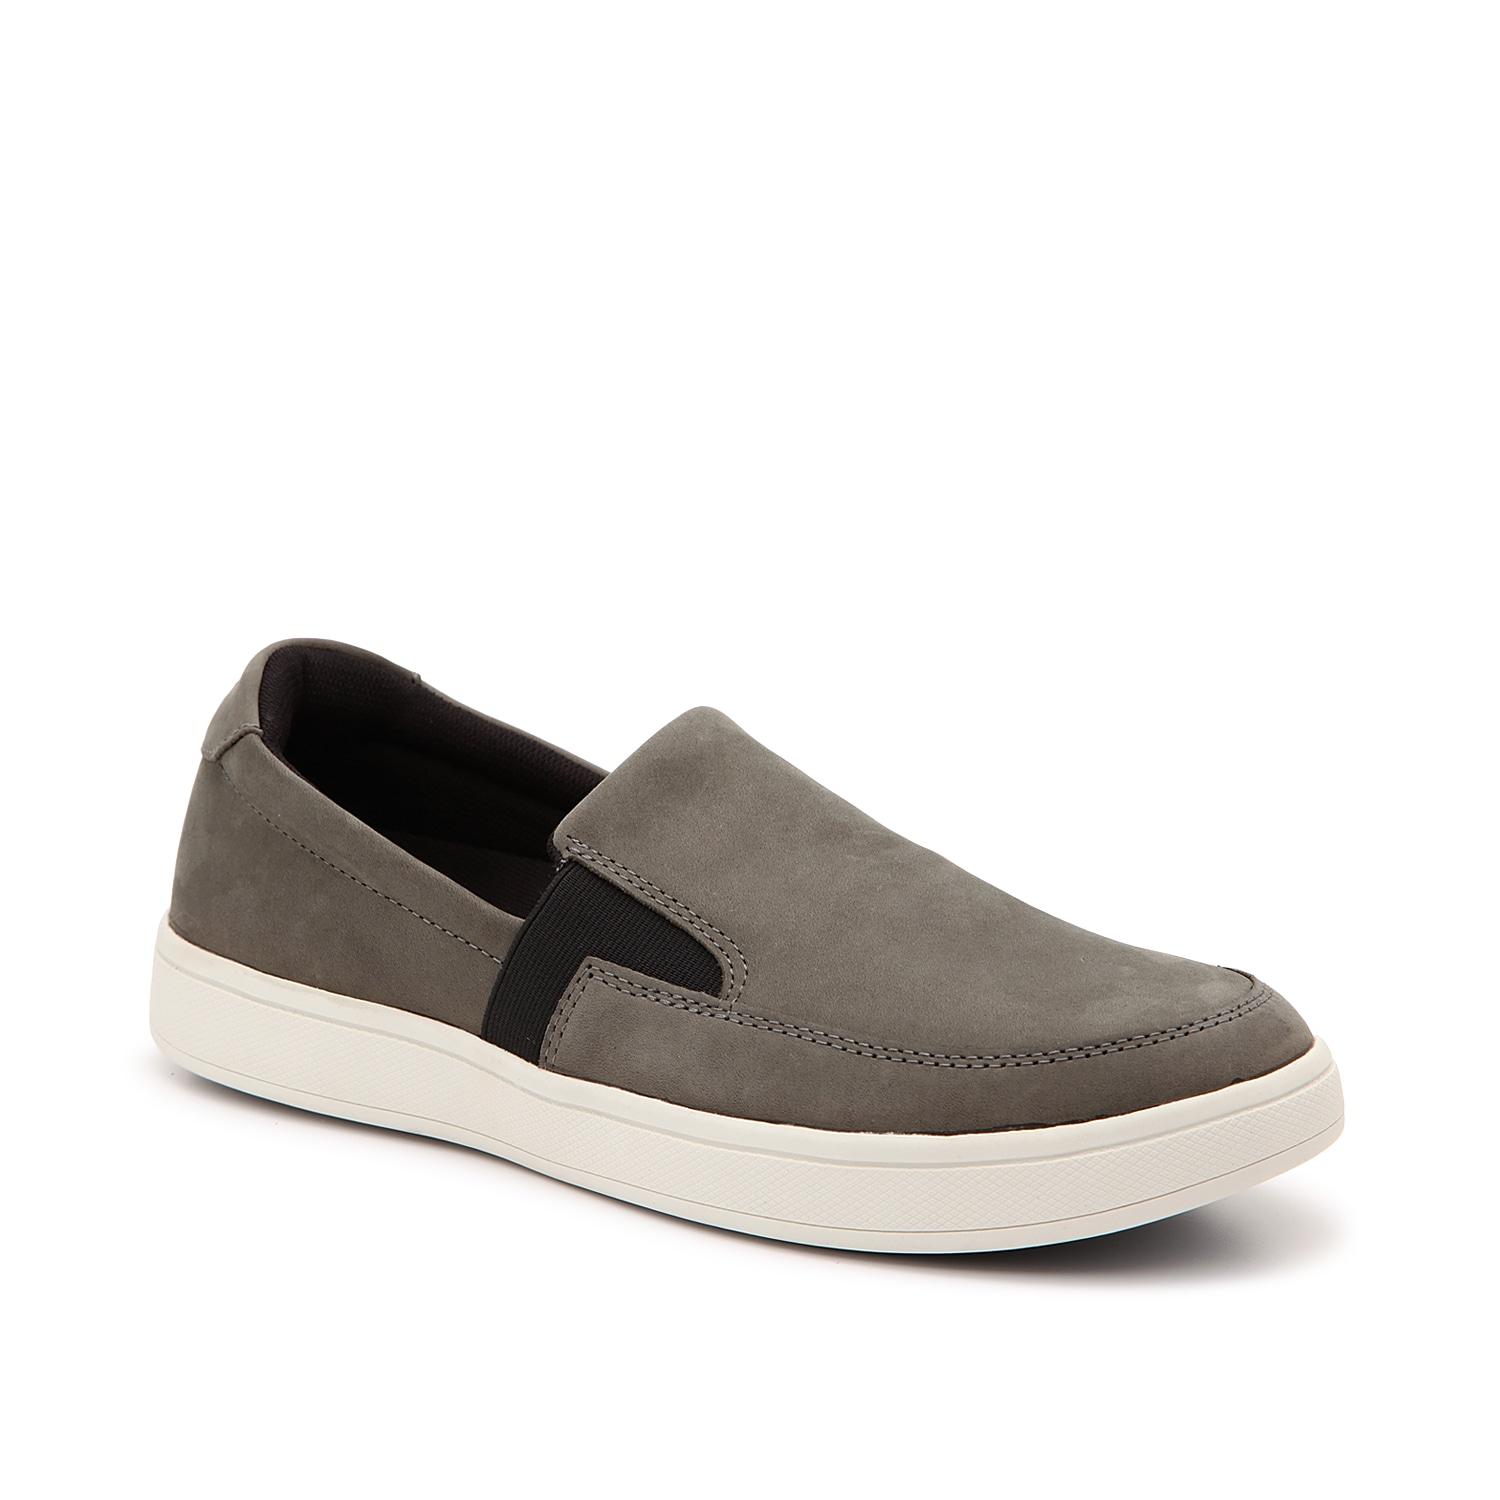 Complete your shoe collection this season with the Jump slip-on from Drew. This low-top sneak features a nubuck leather upper and a removable insole for optimal comfort!